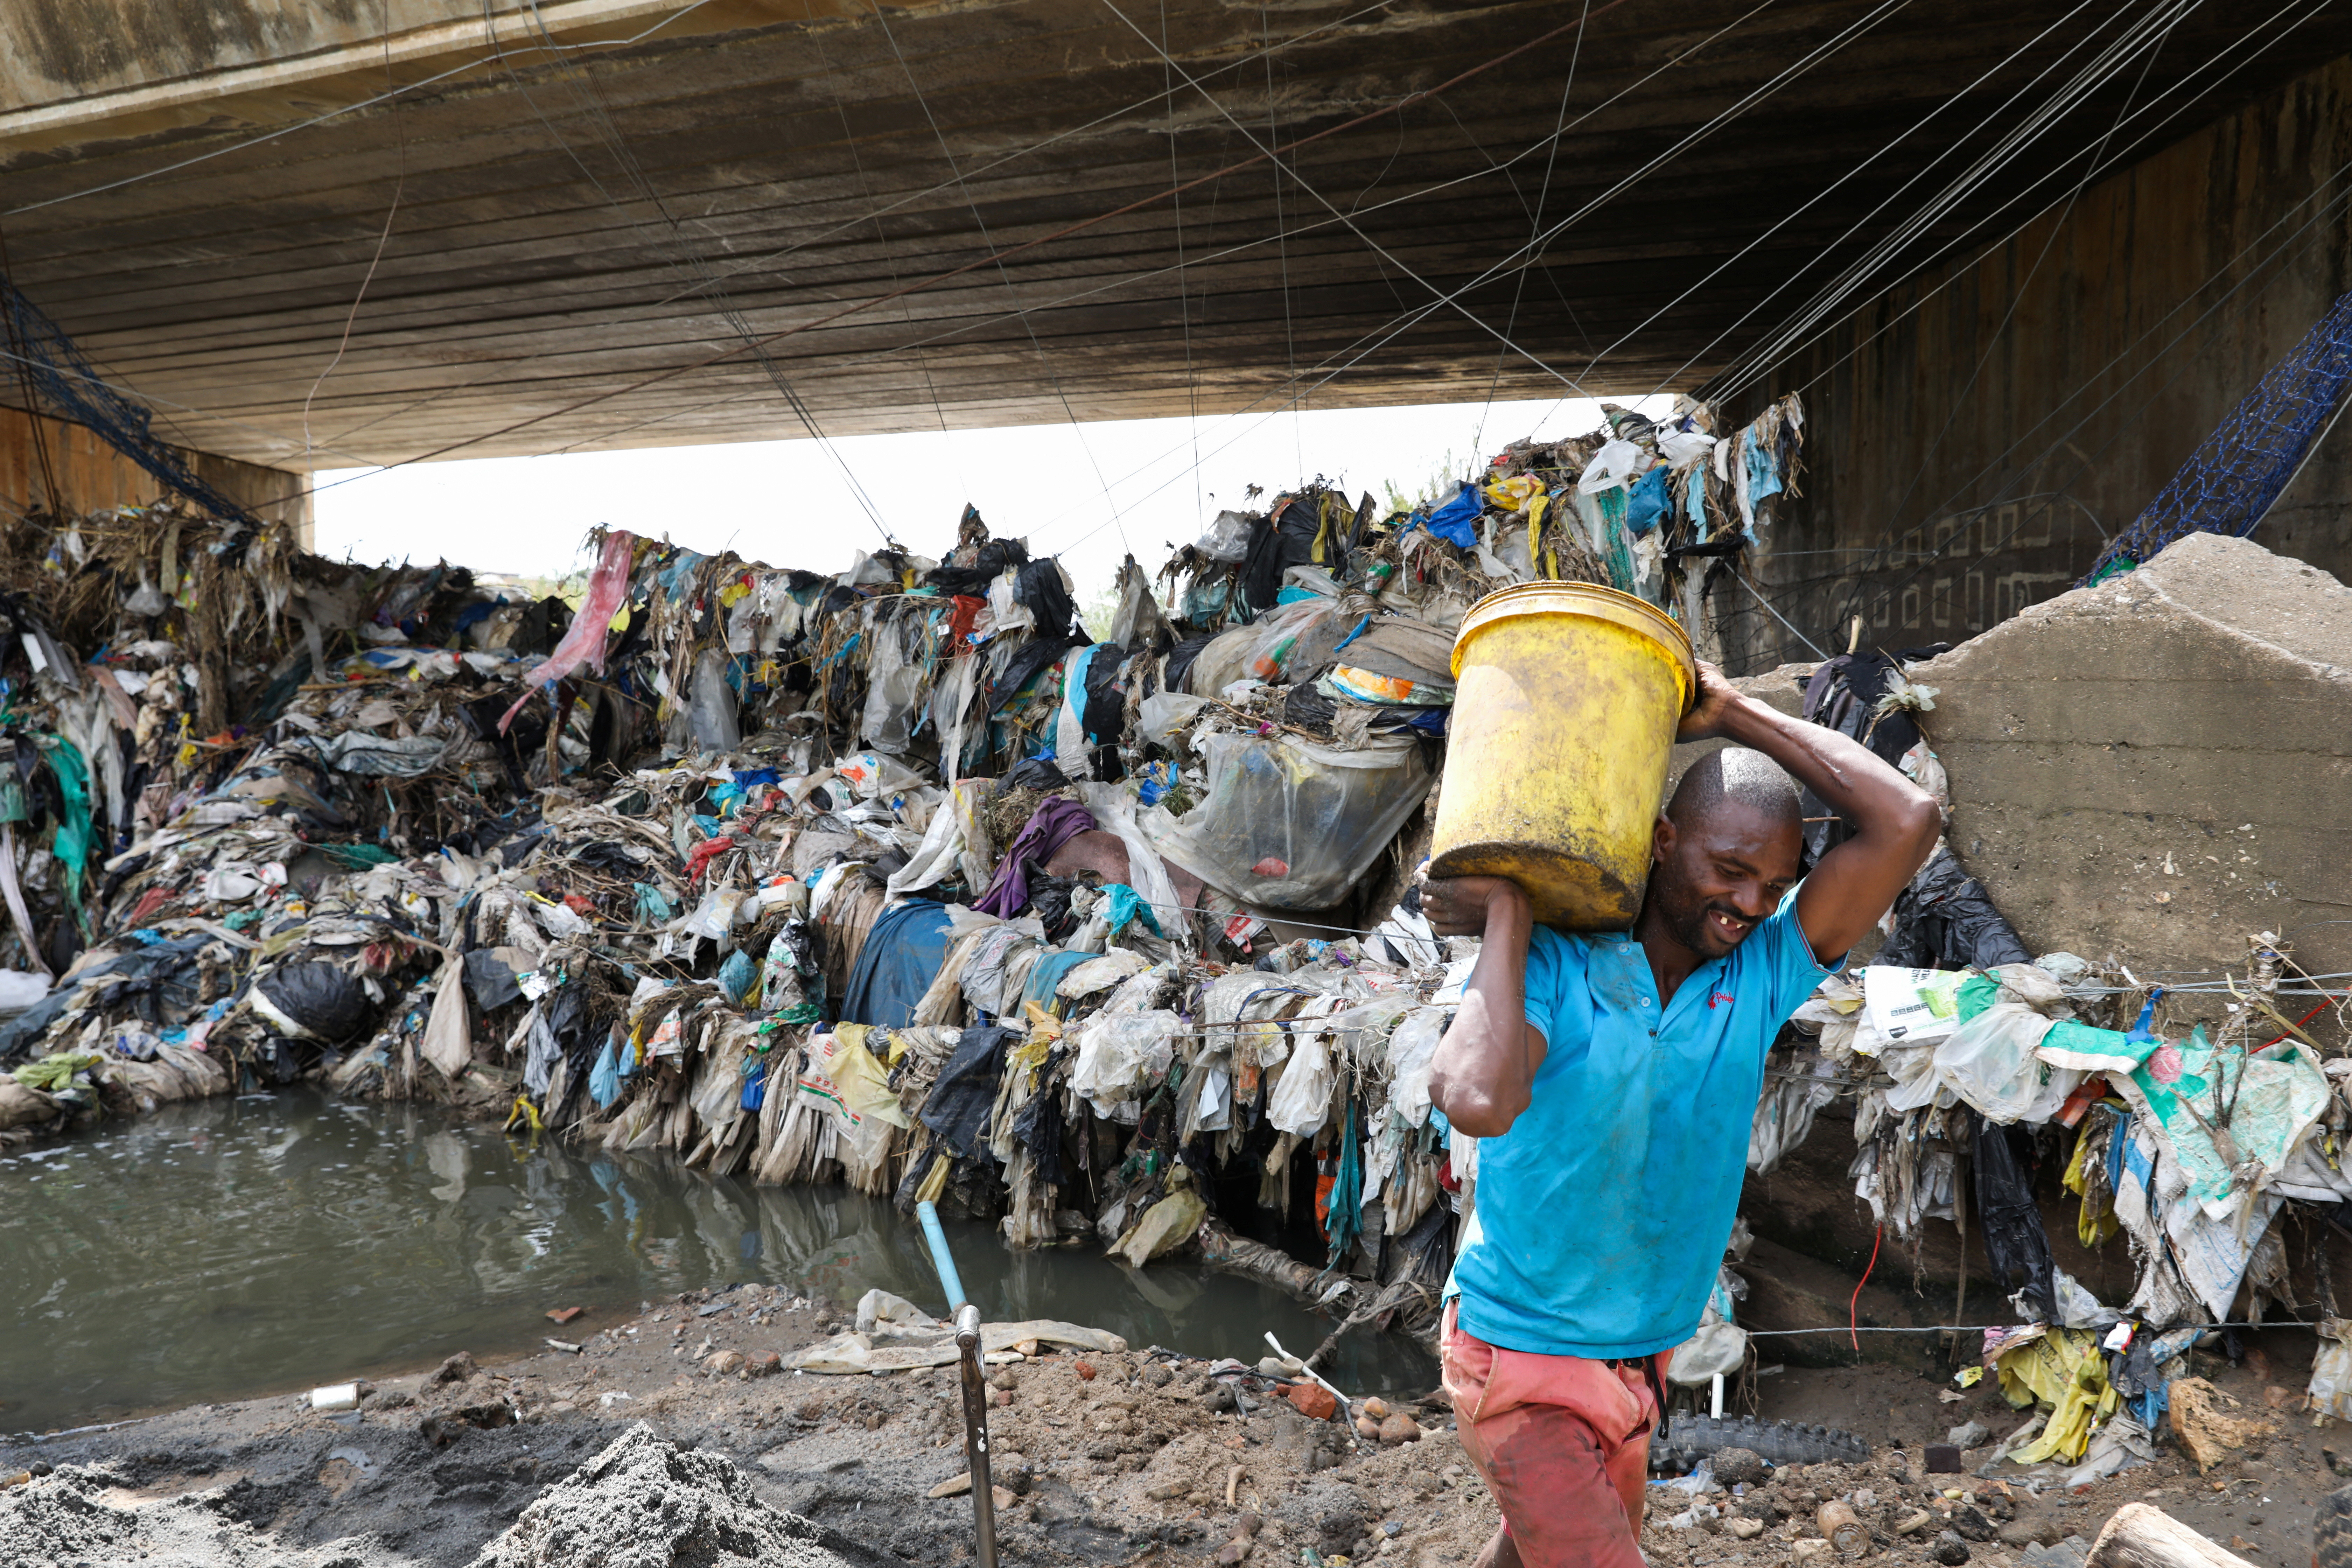 A man collects recyclable plastic in Olifantsfontein near Kempton Park, South Africa